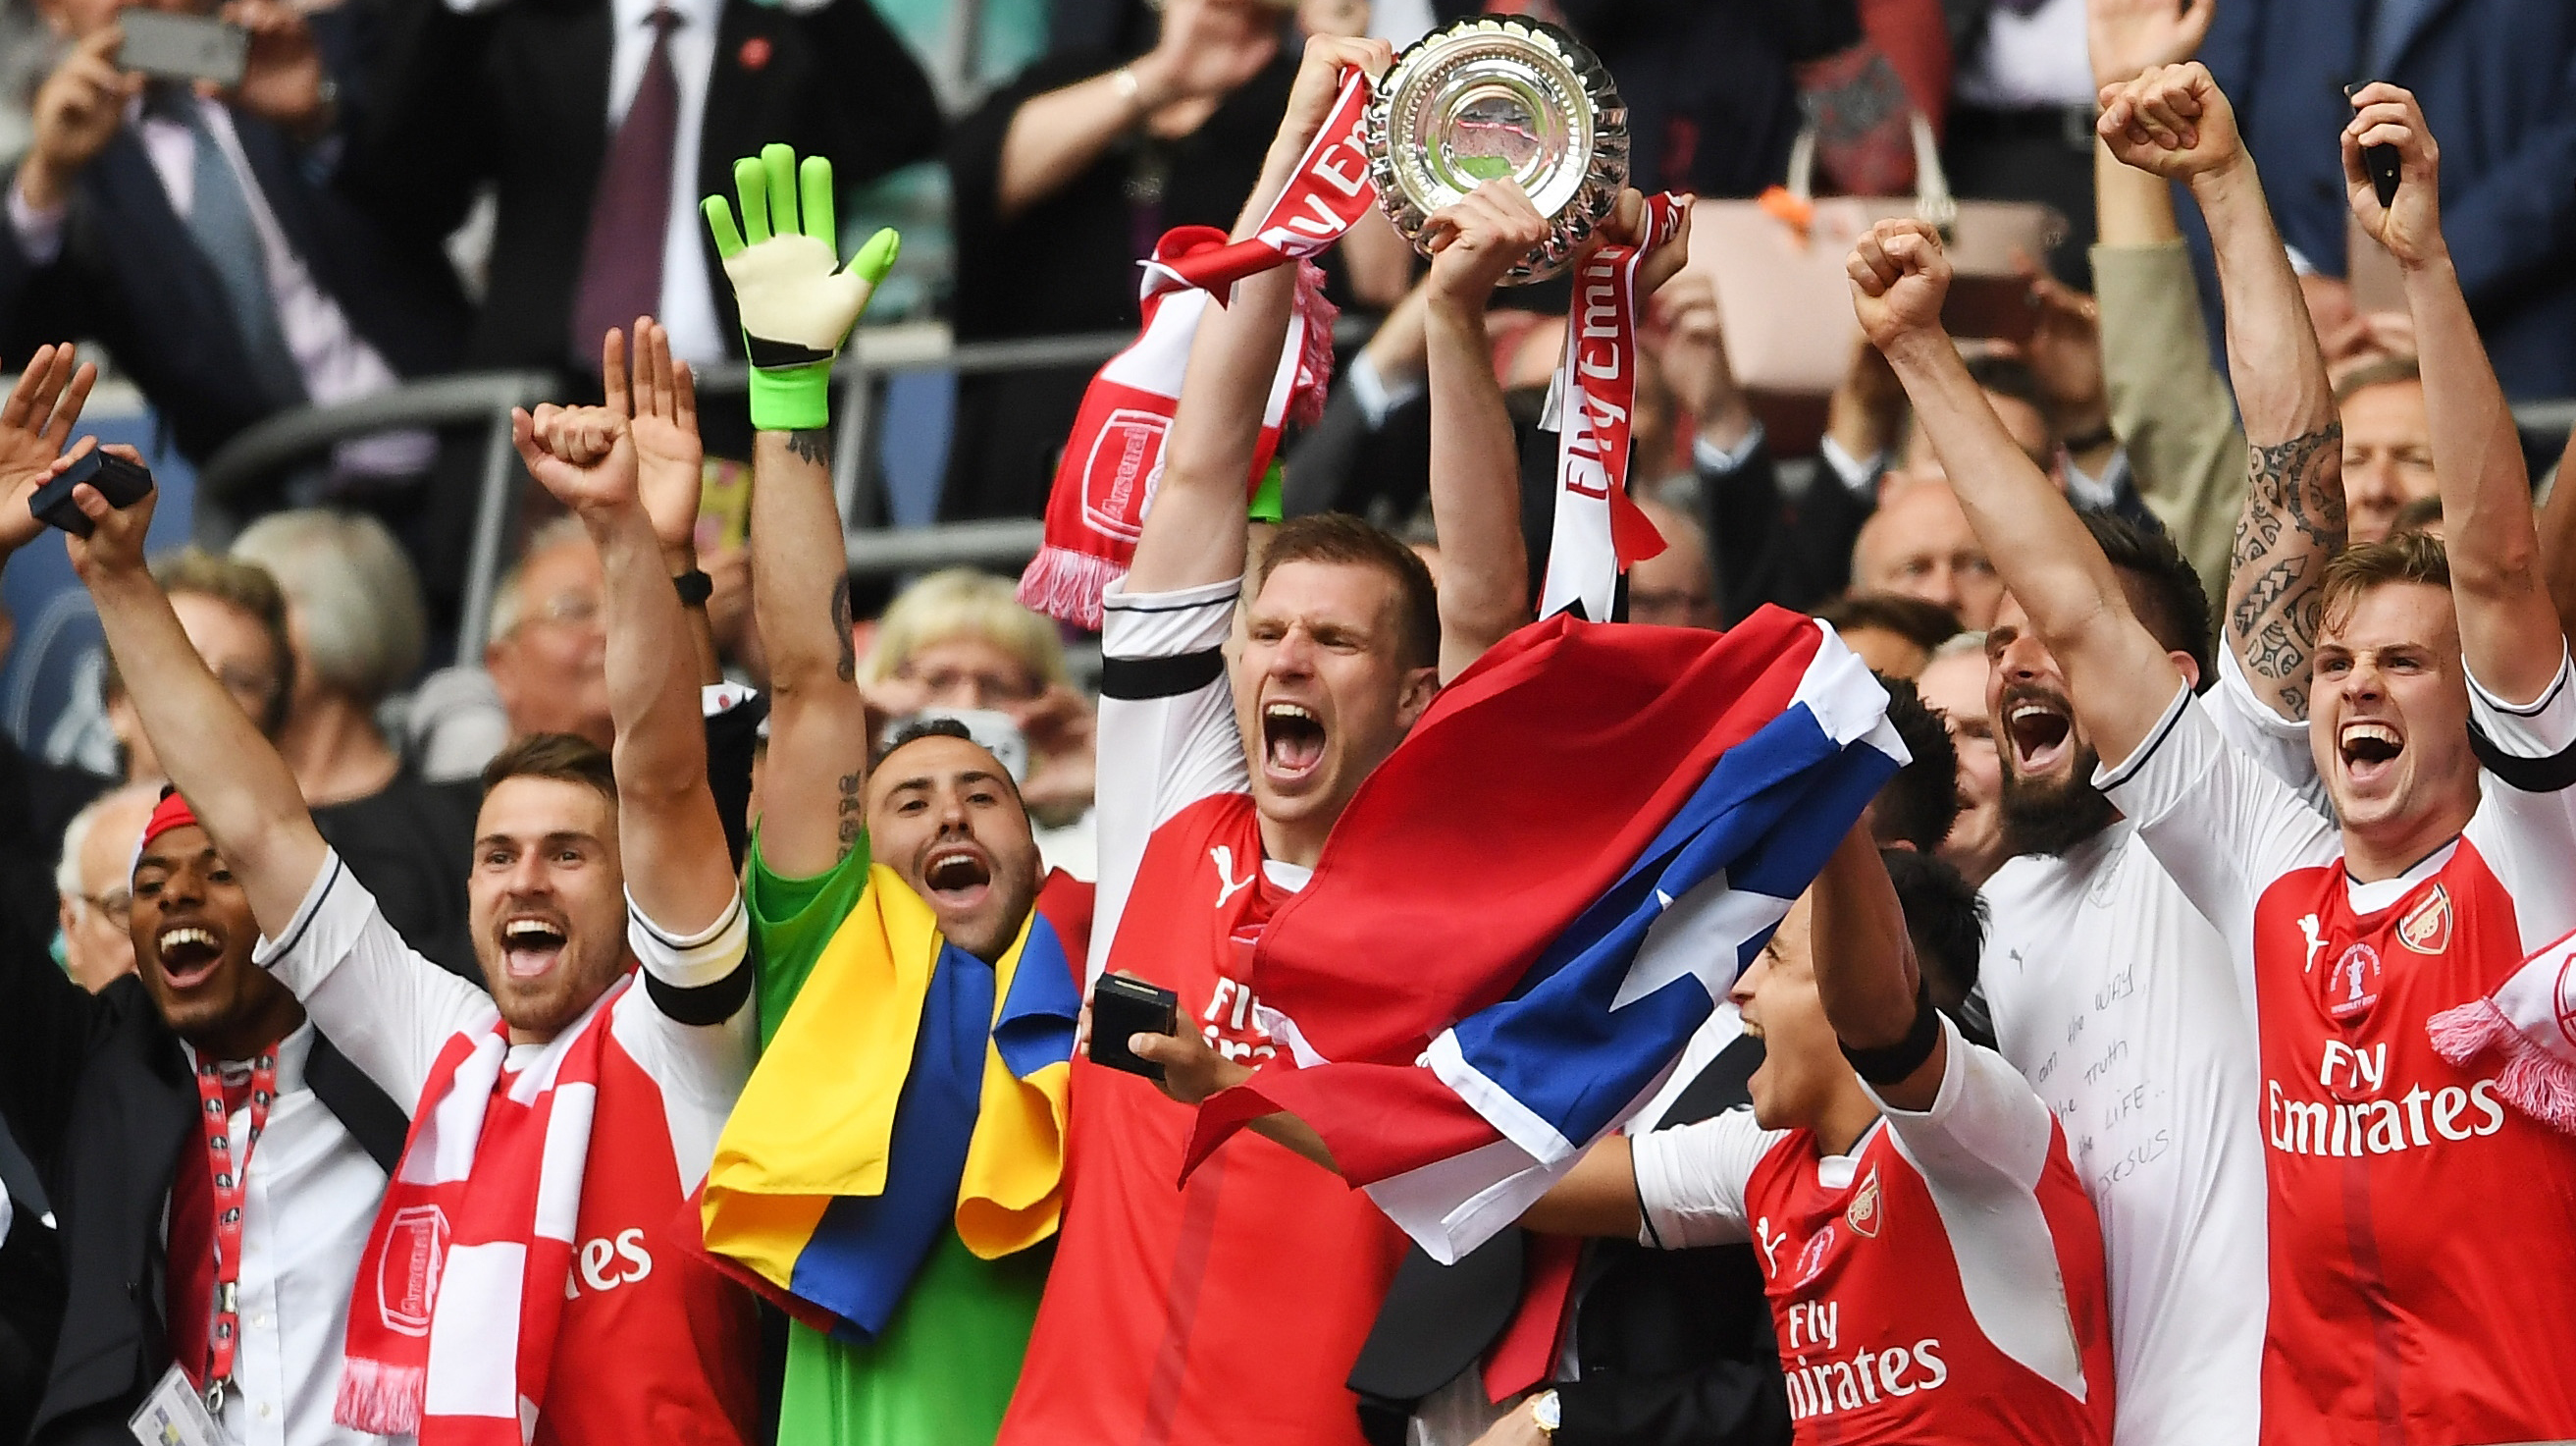 Arsenal FA Cup Champs